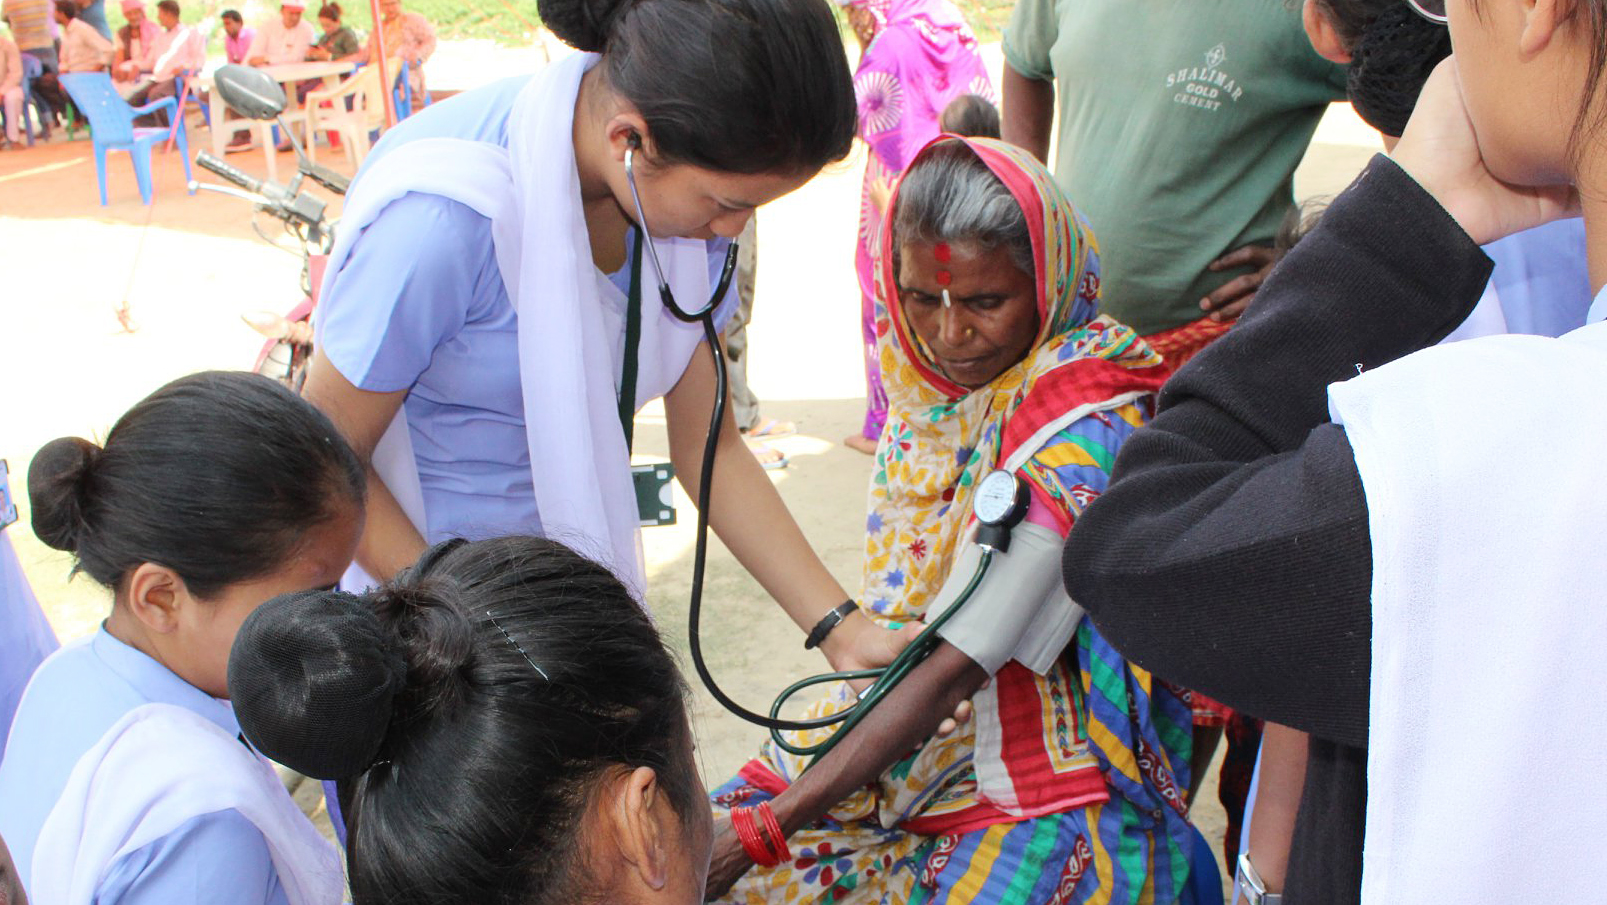 Health staff from Mountain Heart Nepal treat patients in the the Bara District of Nepal after flooding swept through the region. (Photo courtesy of Mountain Heart Nepal)